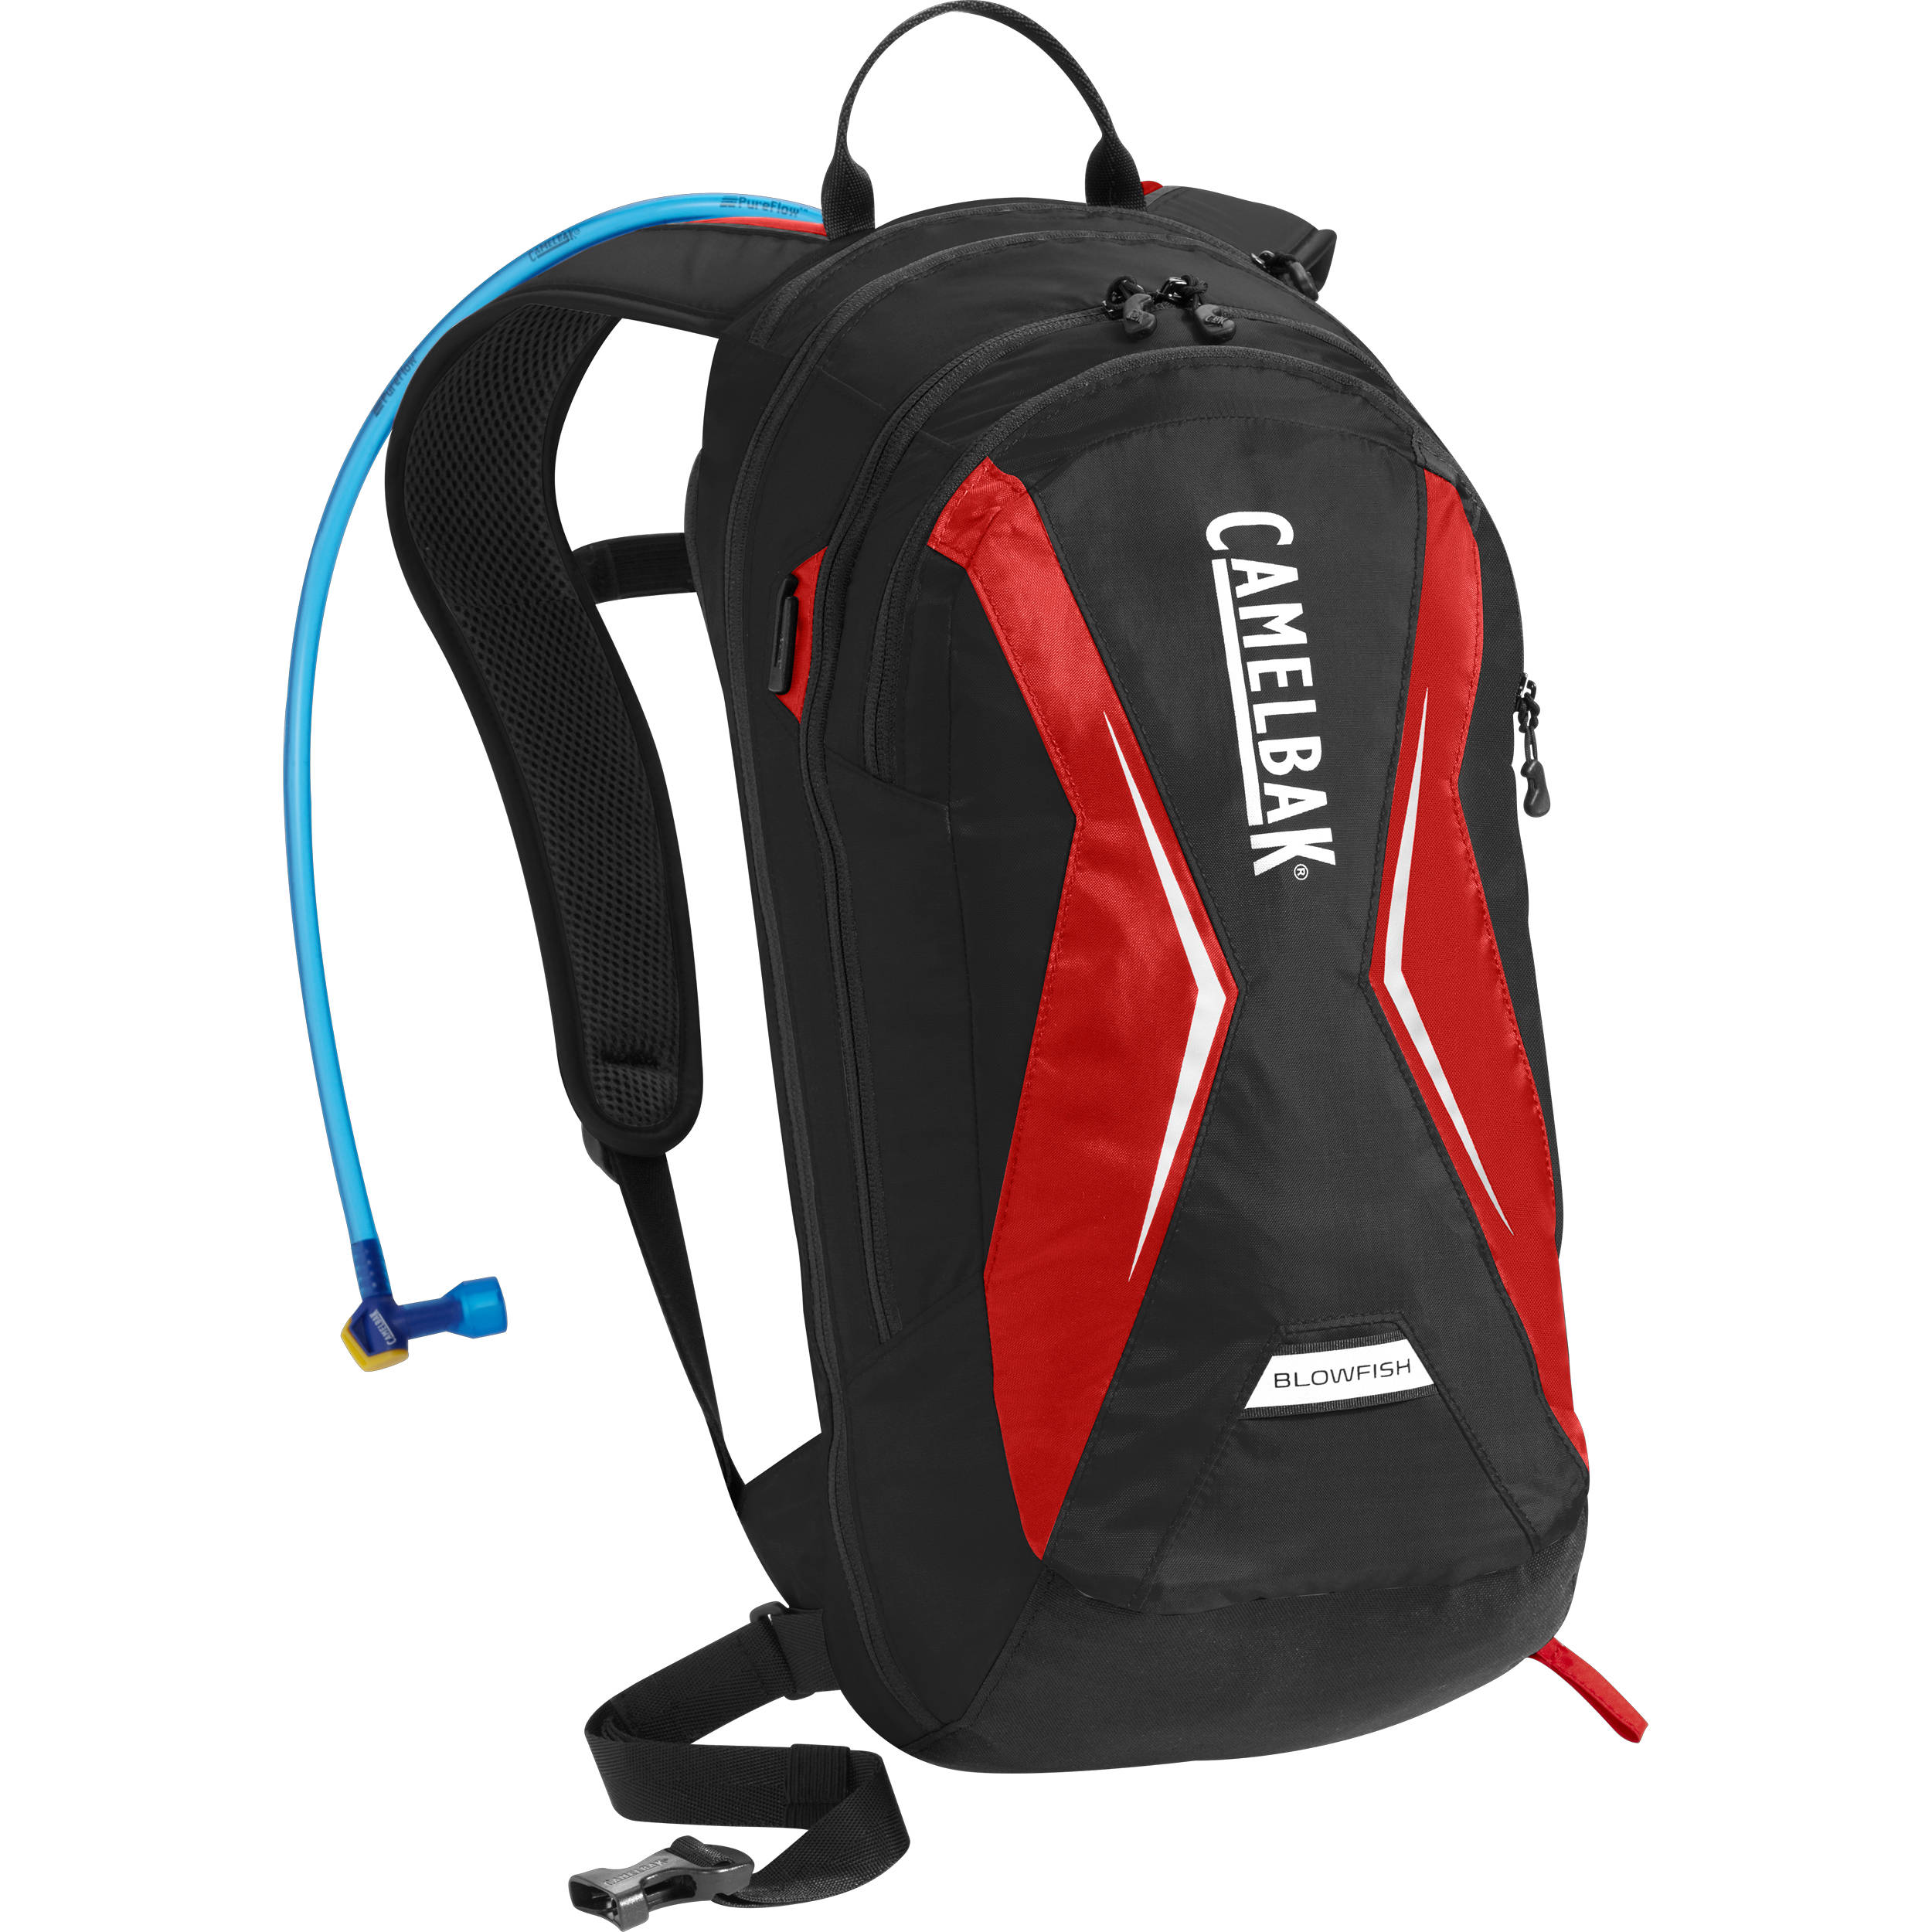 CAMELBAK Blowfish 18L Hydration Backpack with 2L Reservoir 62170